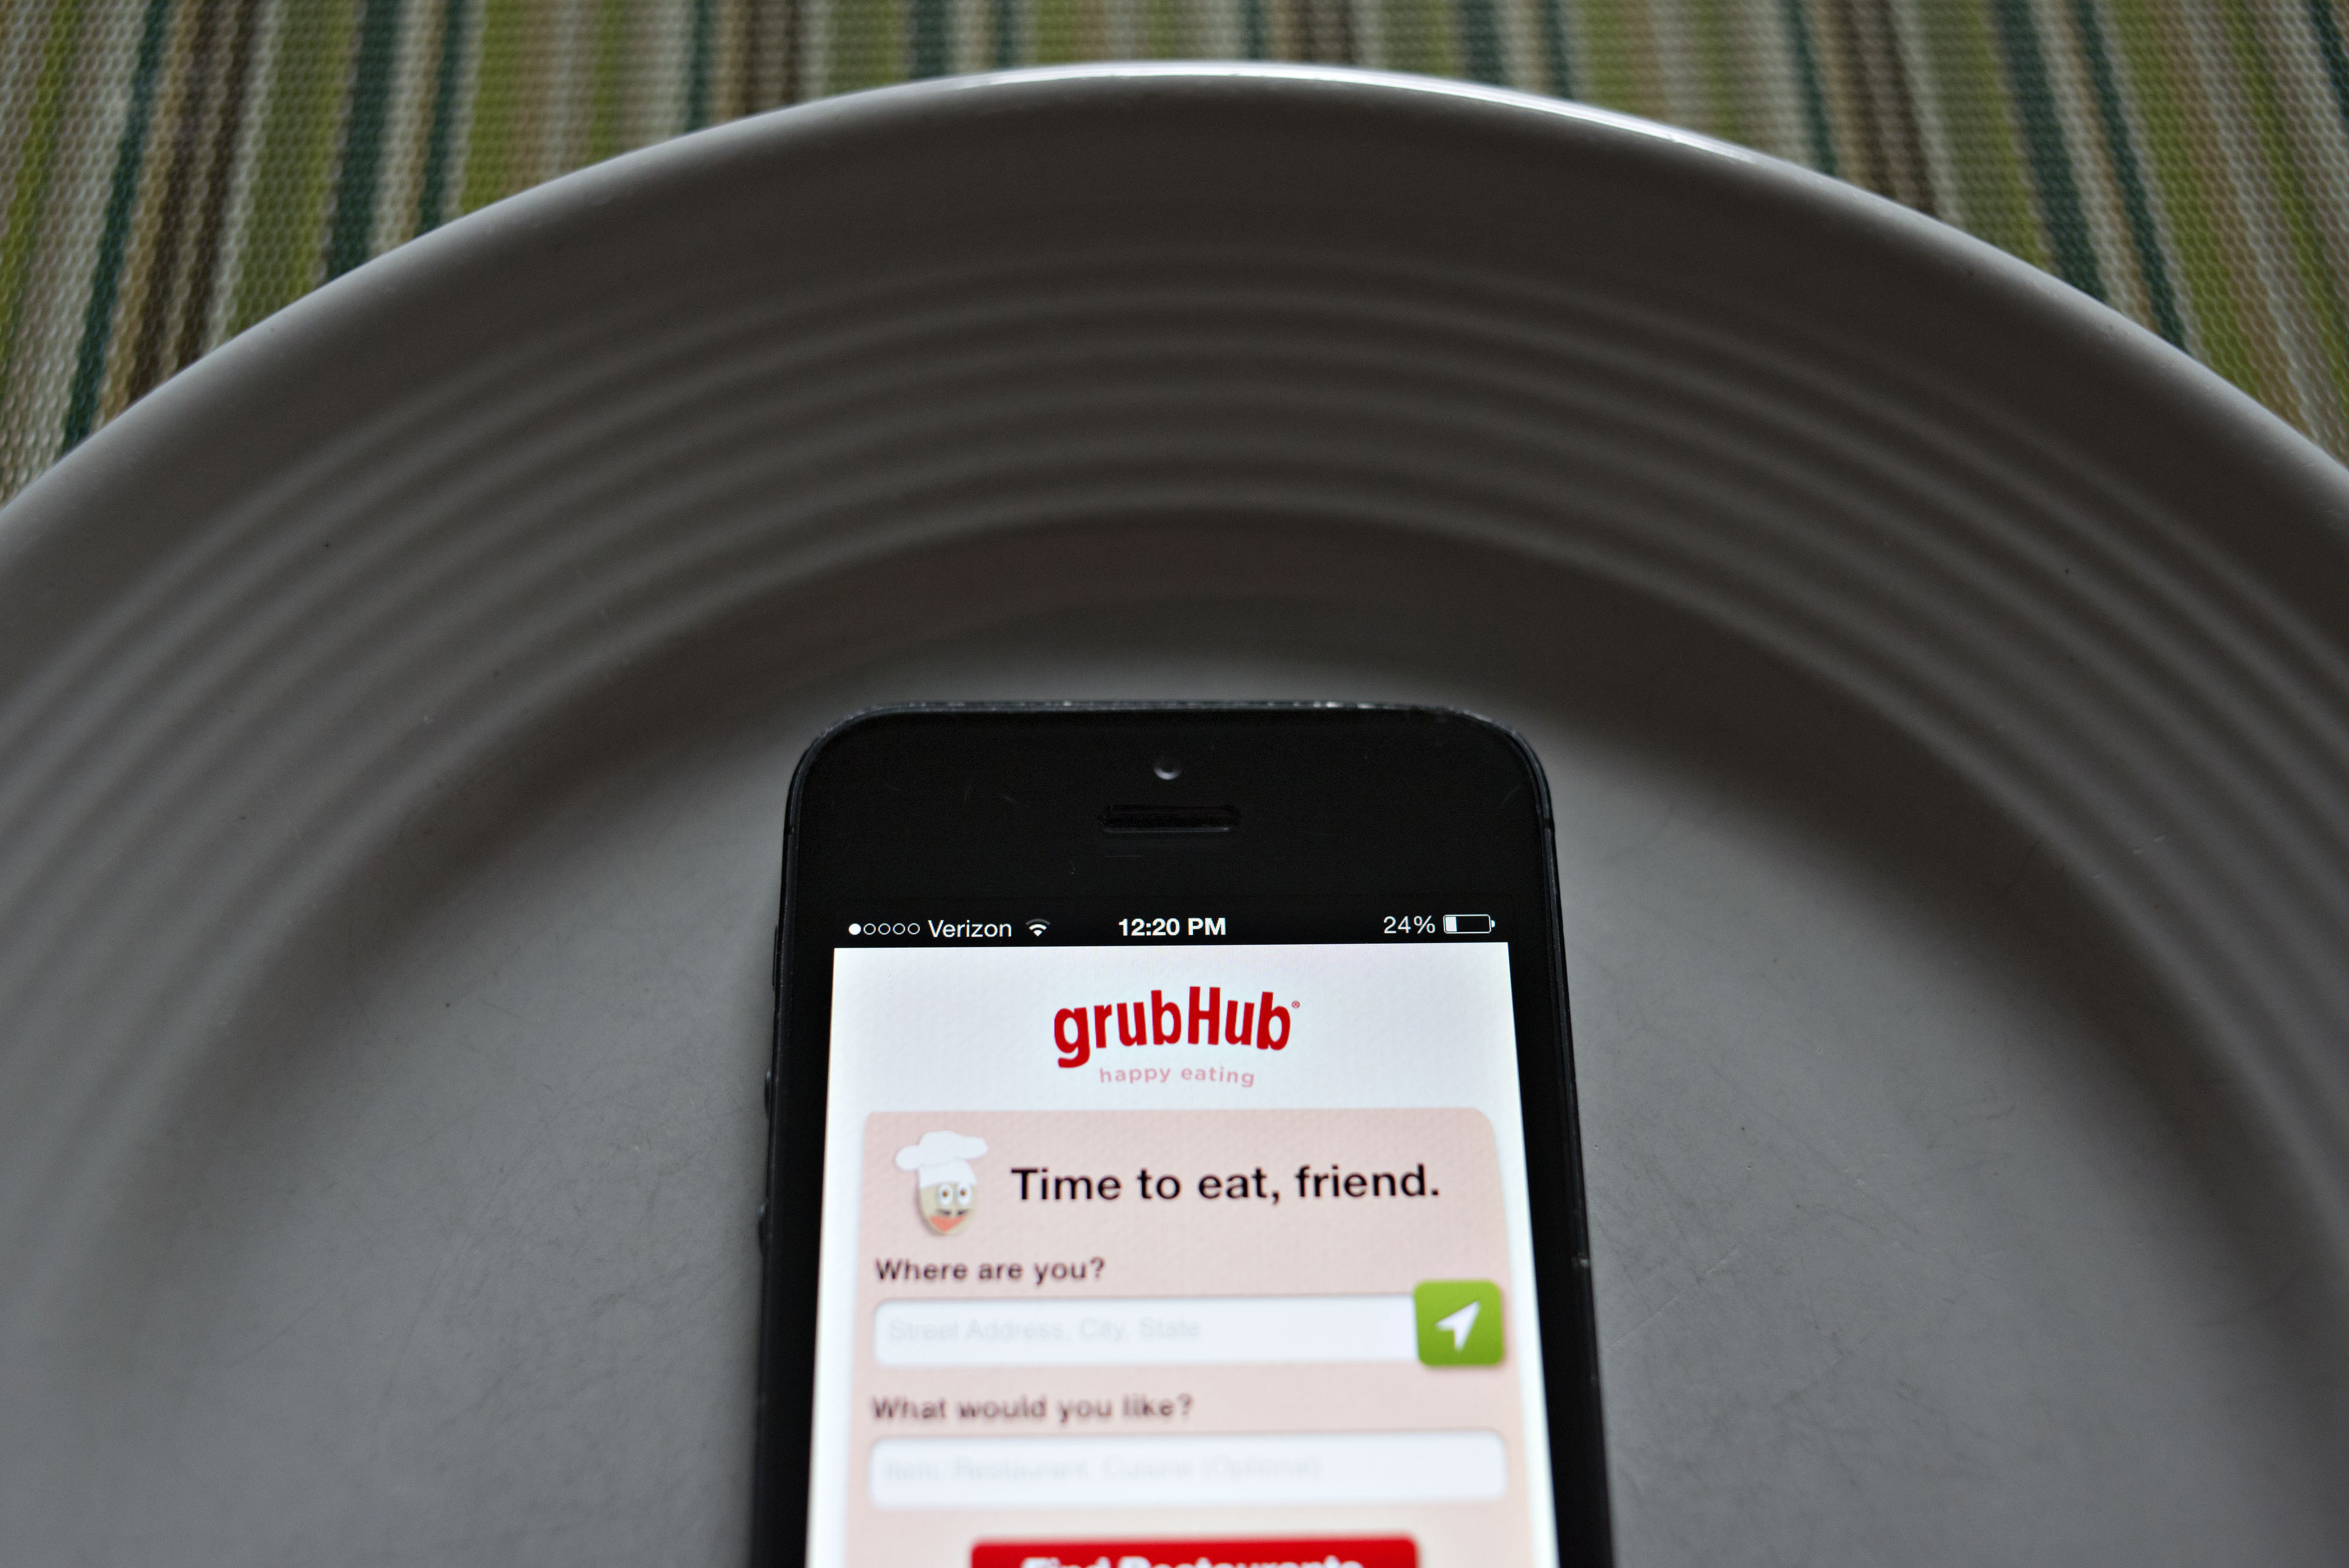 Grubhub Adds Apple Pay To Food Delivery Apps | Fortune